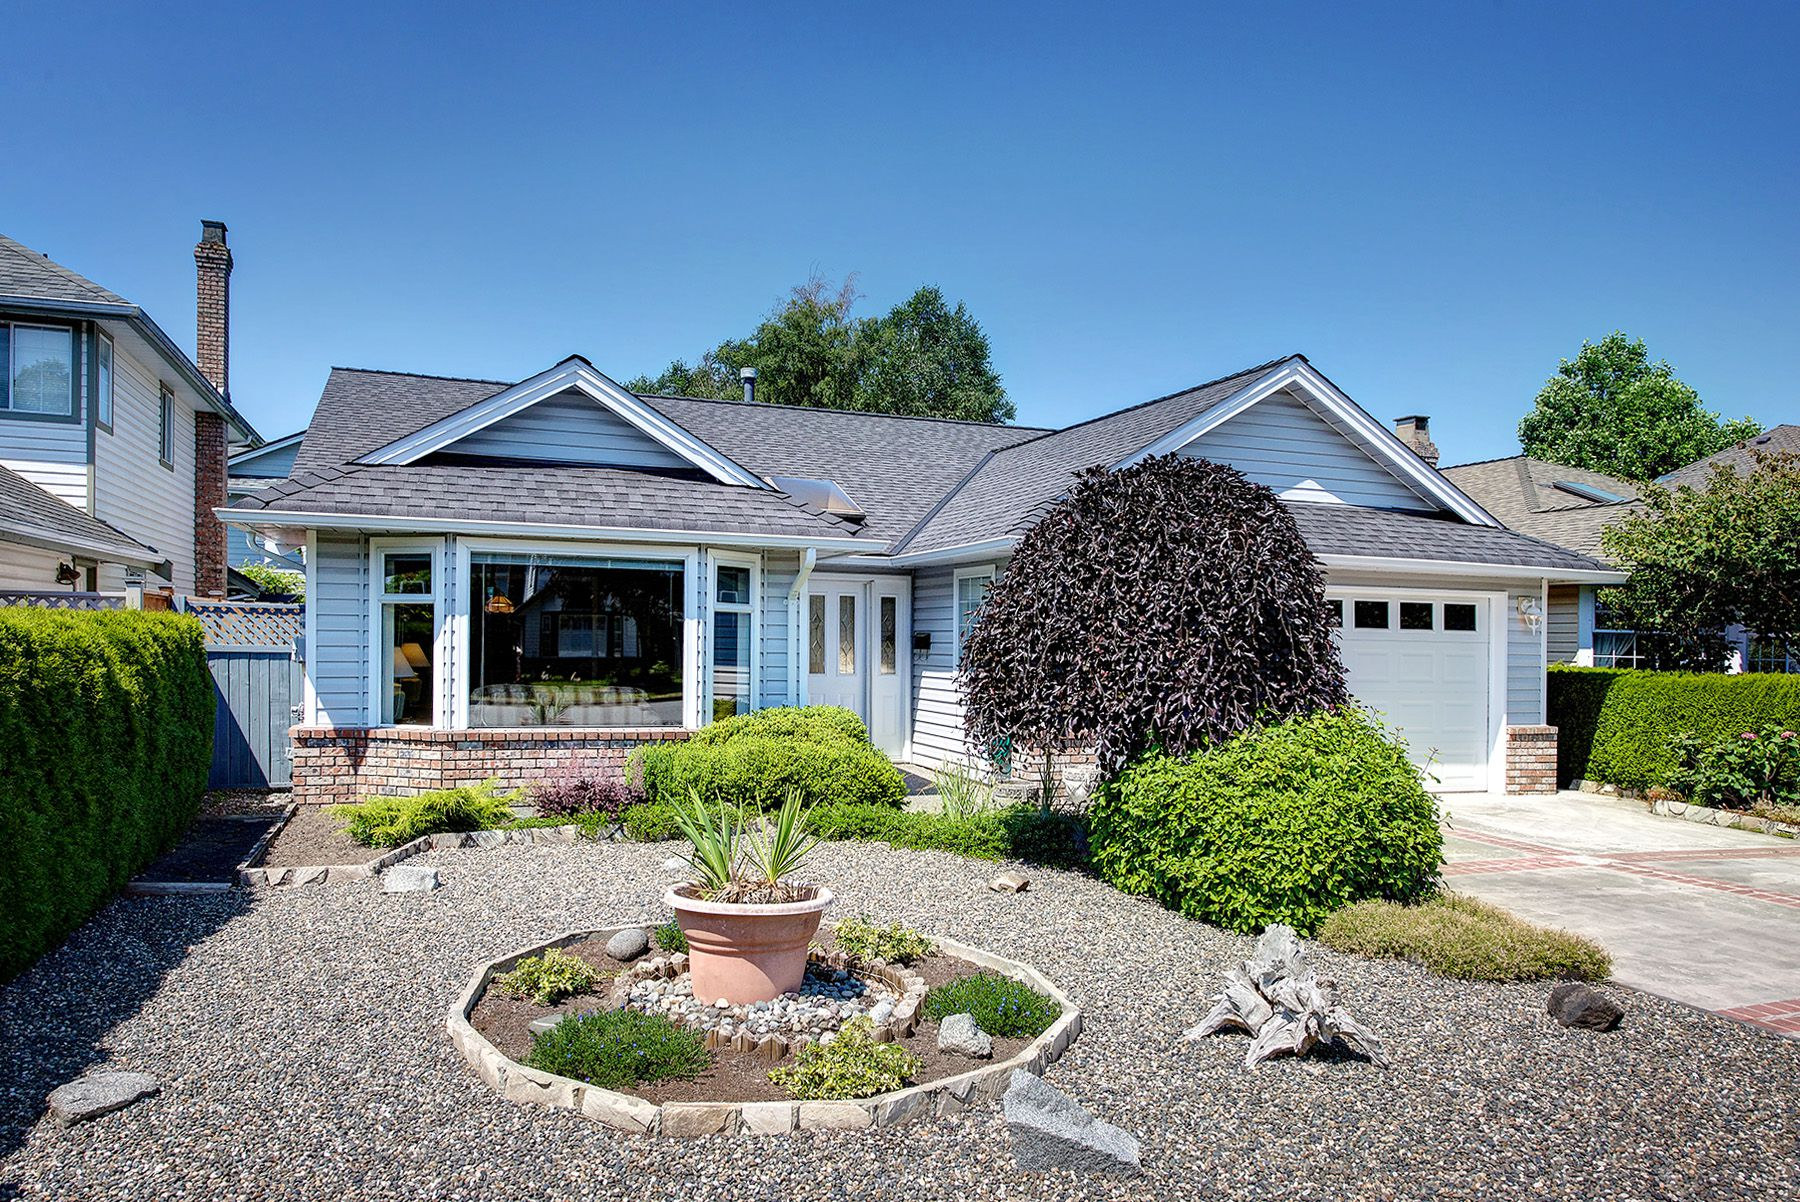 Main Photo: 4441 62 Street in Delta: Holly House for sale (Ladner)  : MLS®# R2282141